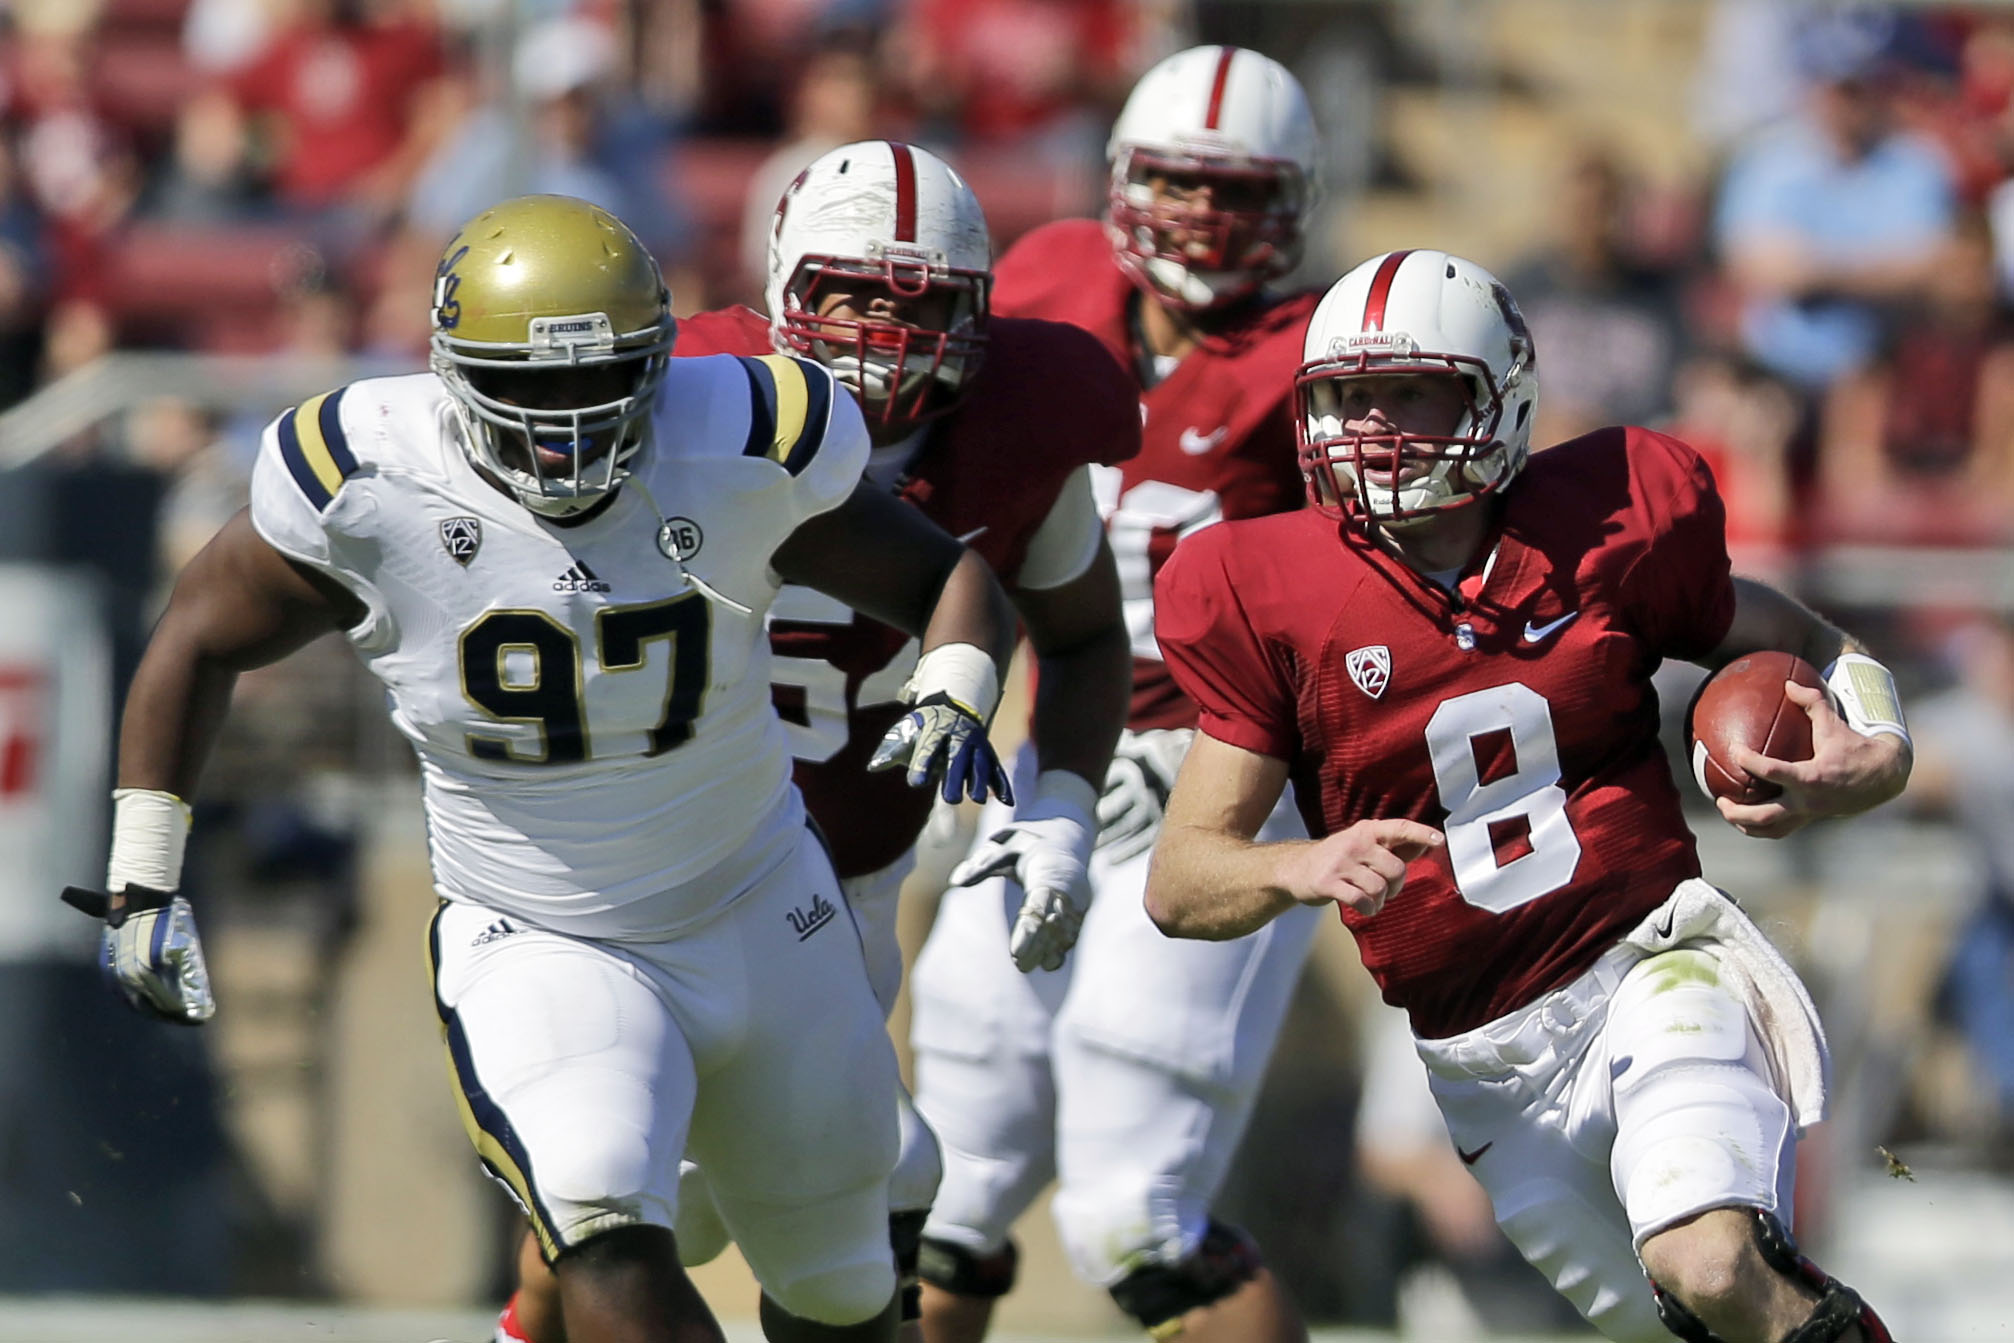 Stanford quarterback Kevin Hogan (8) is chased by UCLA defensive tackle Kenneth Clark (97) during the first half of an NCAA college football game on Saturday, Oct. 19, 2013, in Stanford, Calif